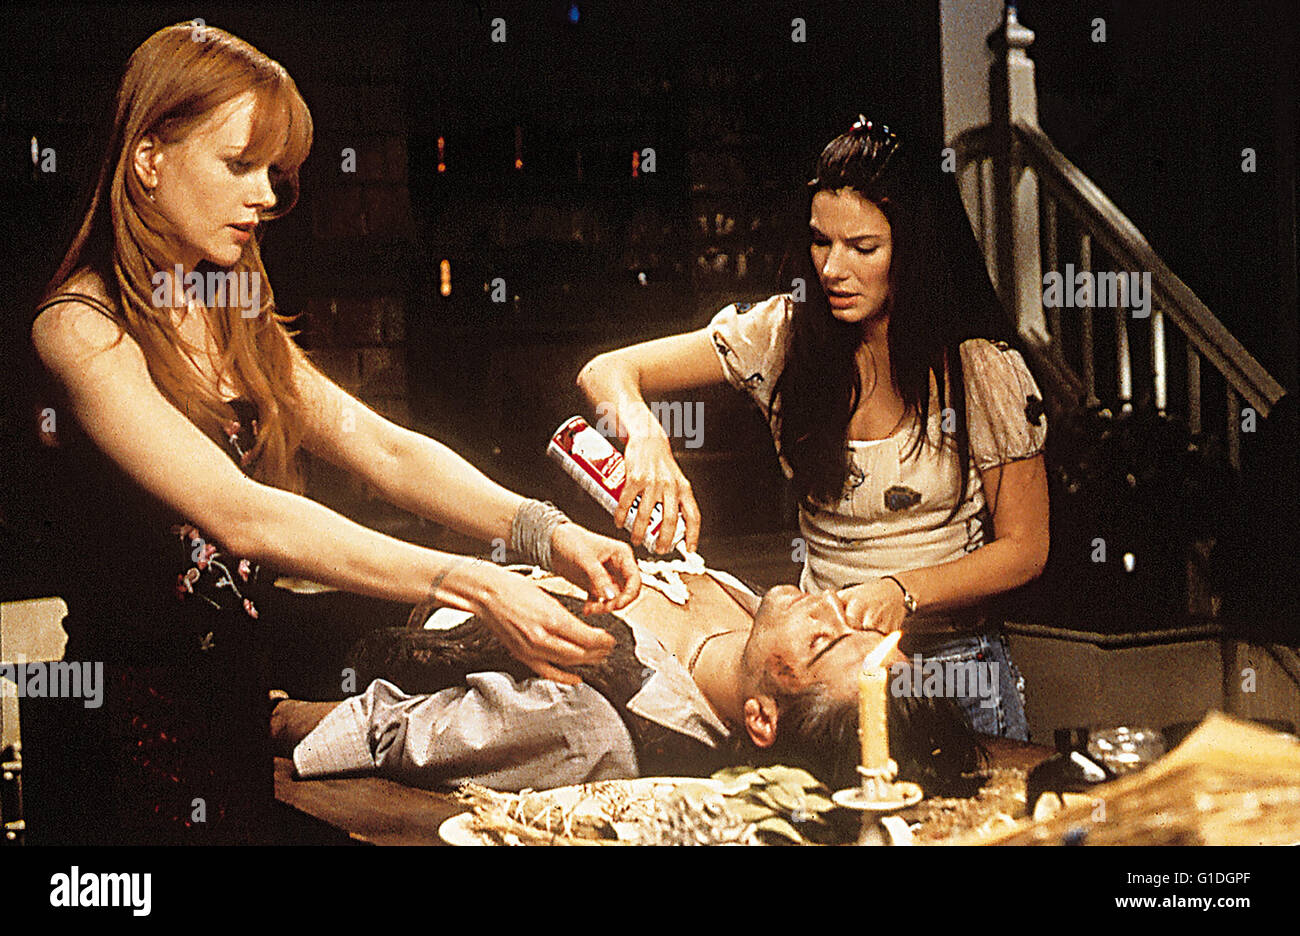 Practical Magic - Zauberhafte Schwestern / Nicole Kidman / Sandra Bullock / Practical Magic - Zauberhafte Schwestern - Stock Image